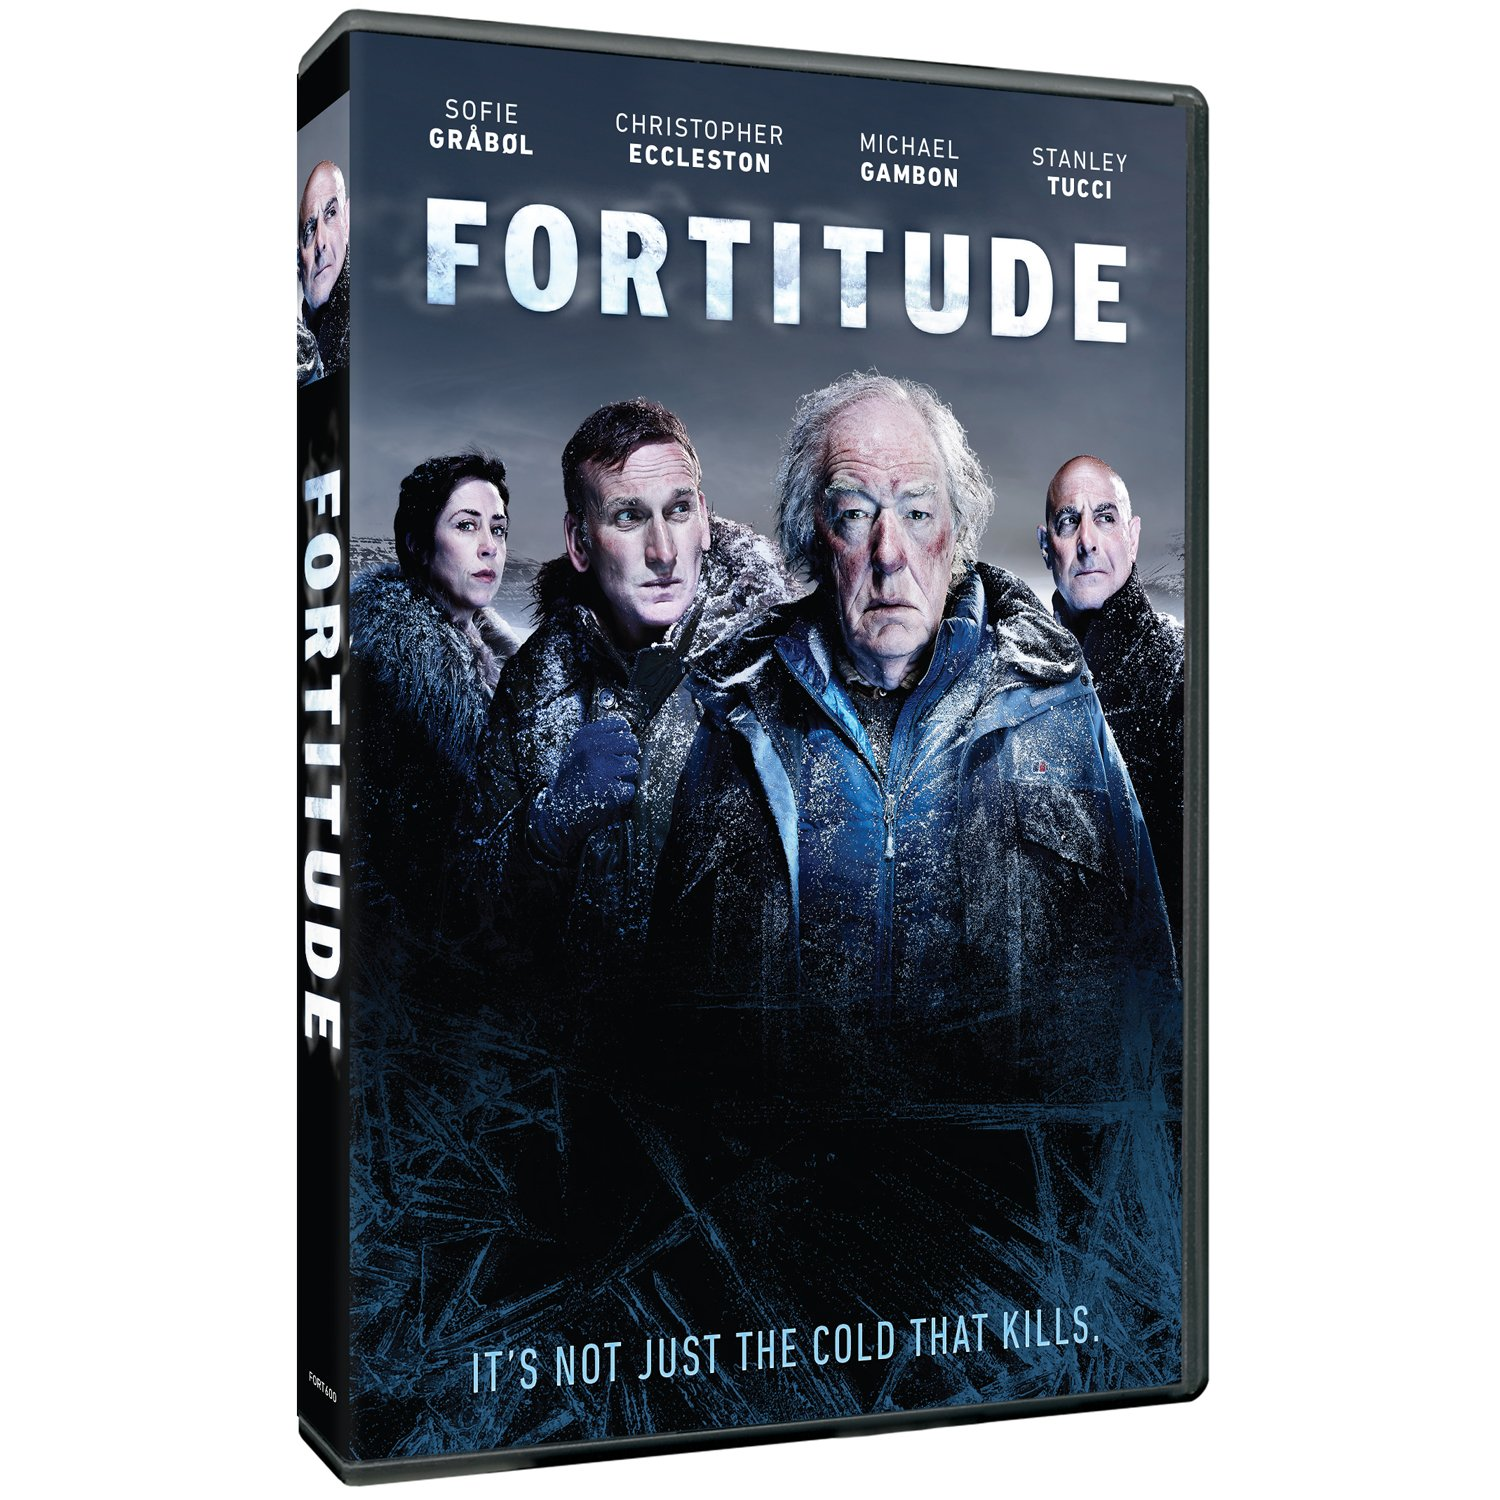 Fortitude (US link)